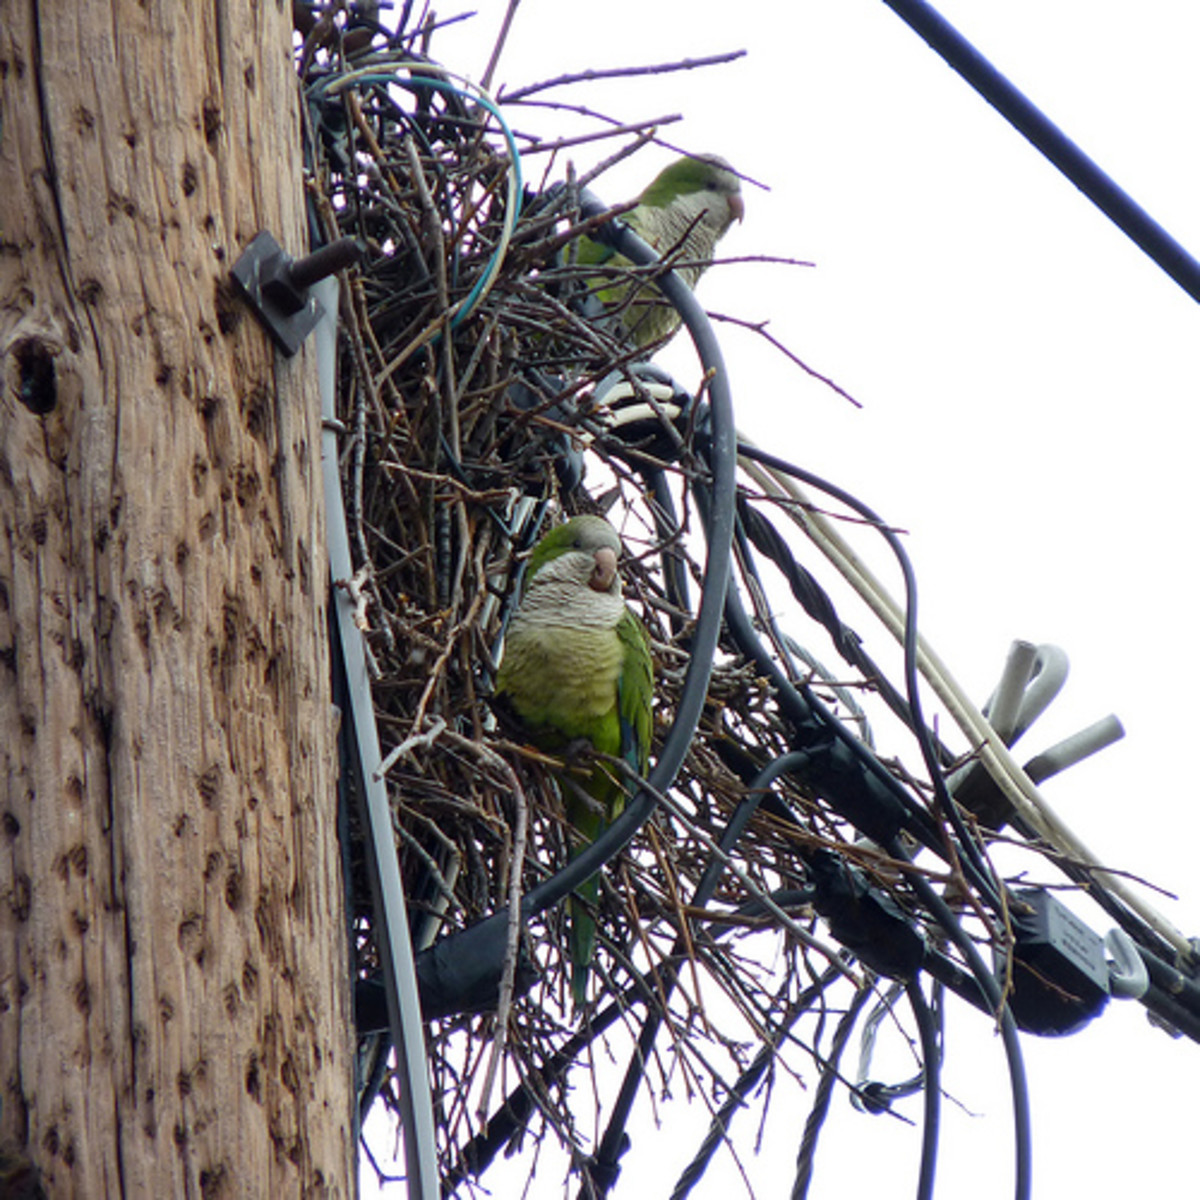 Monk parakeet nests on a power line